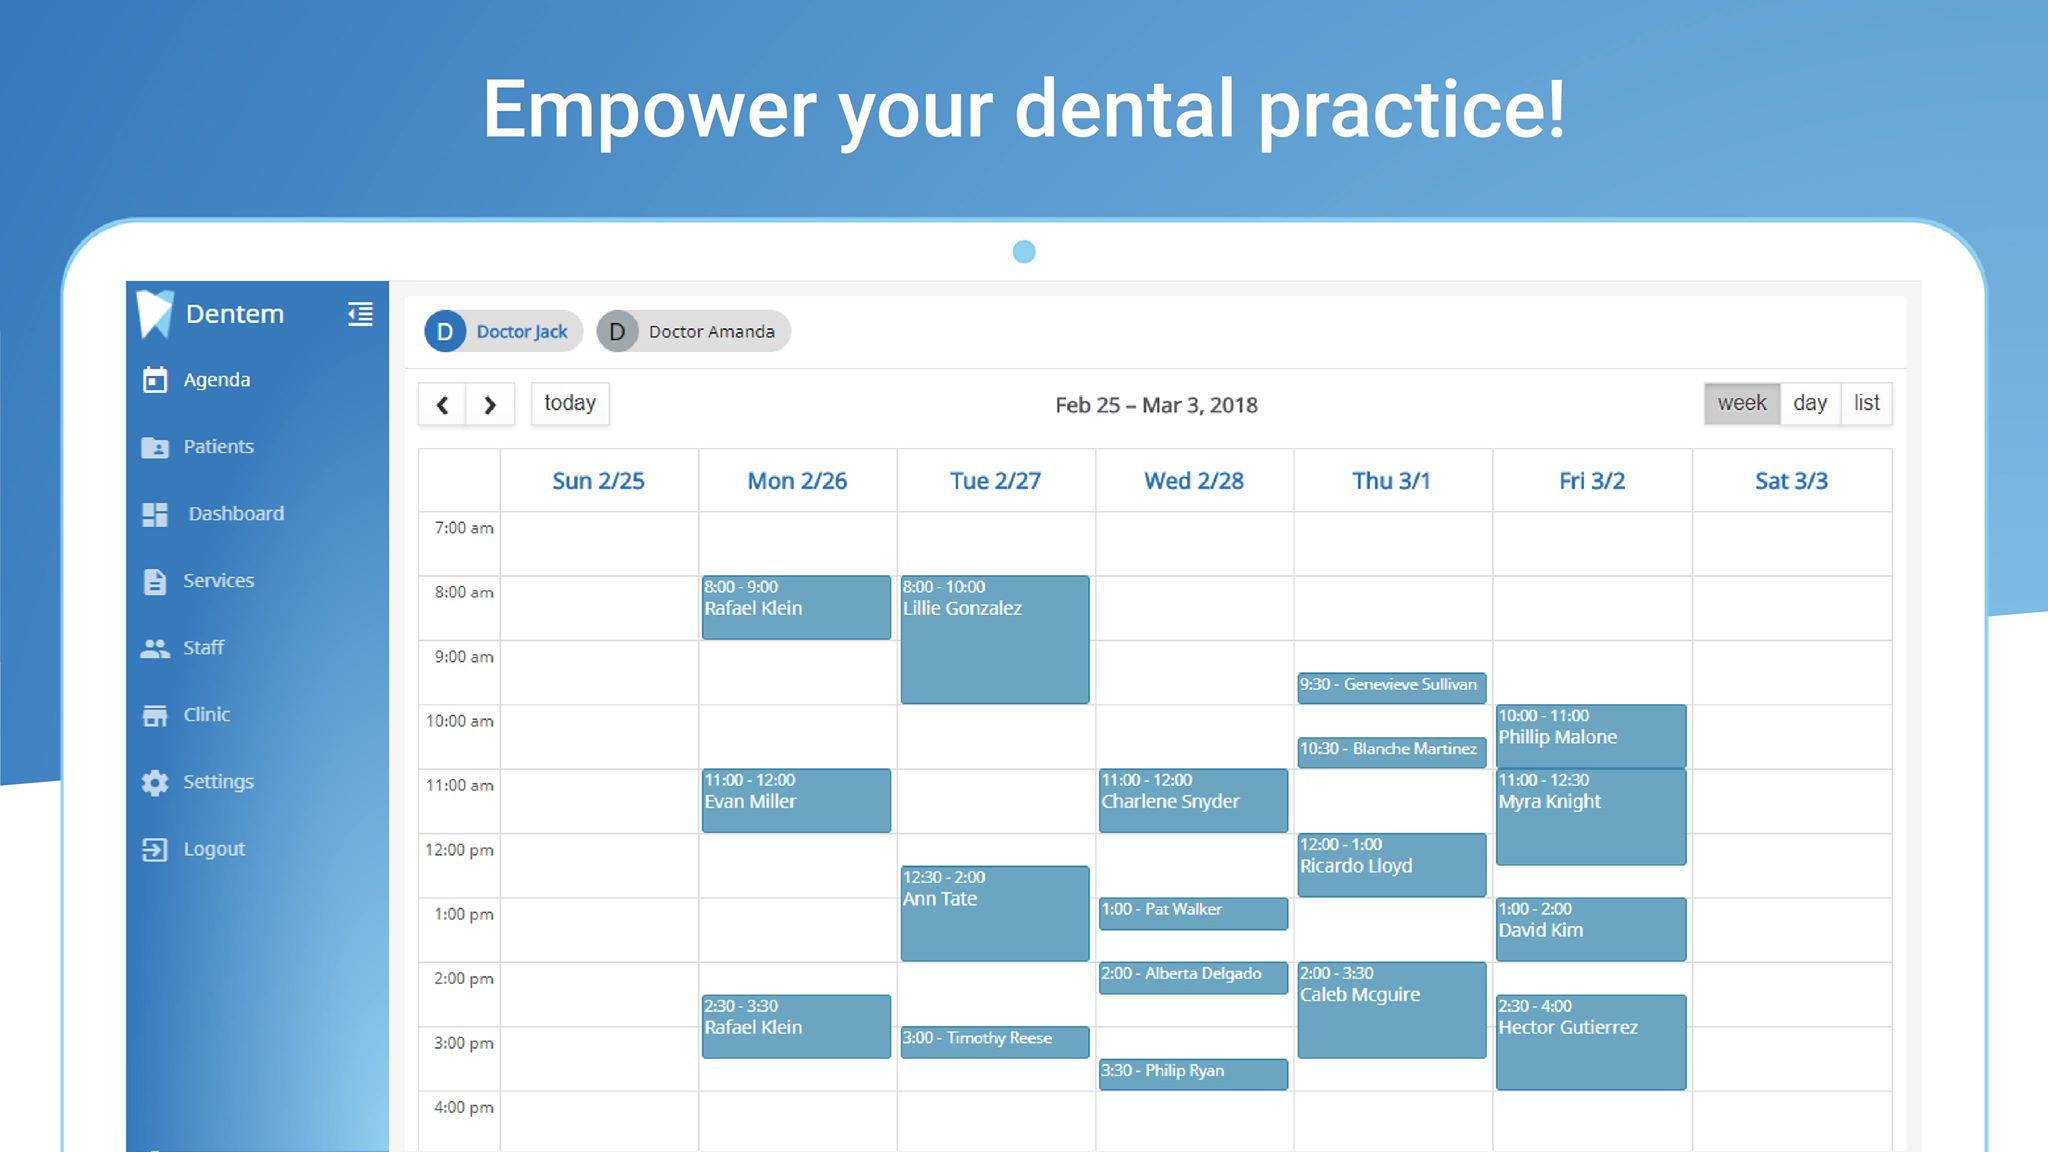 dentem dental practice management software